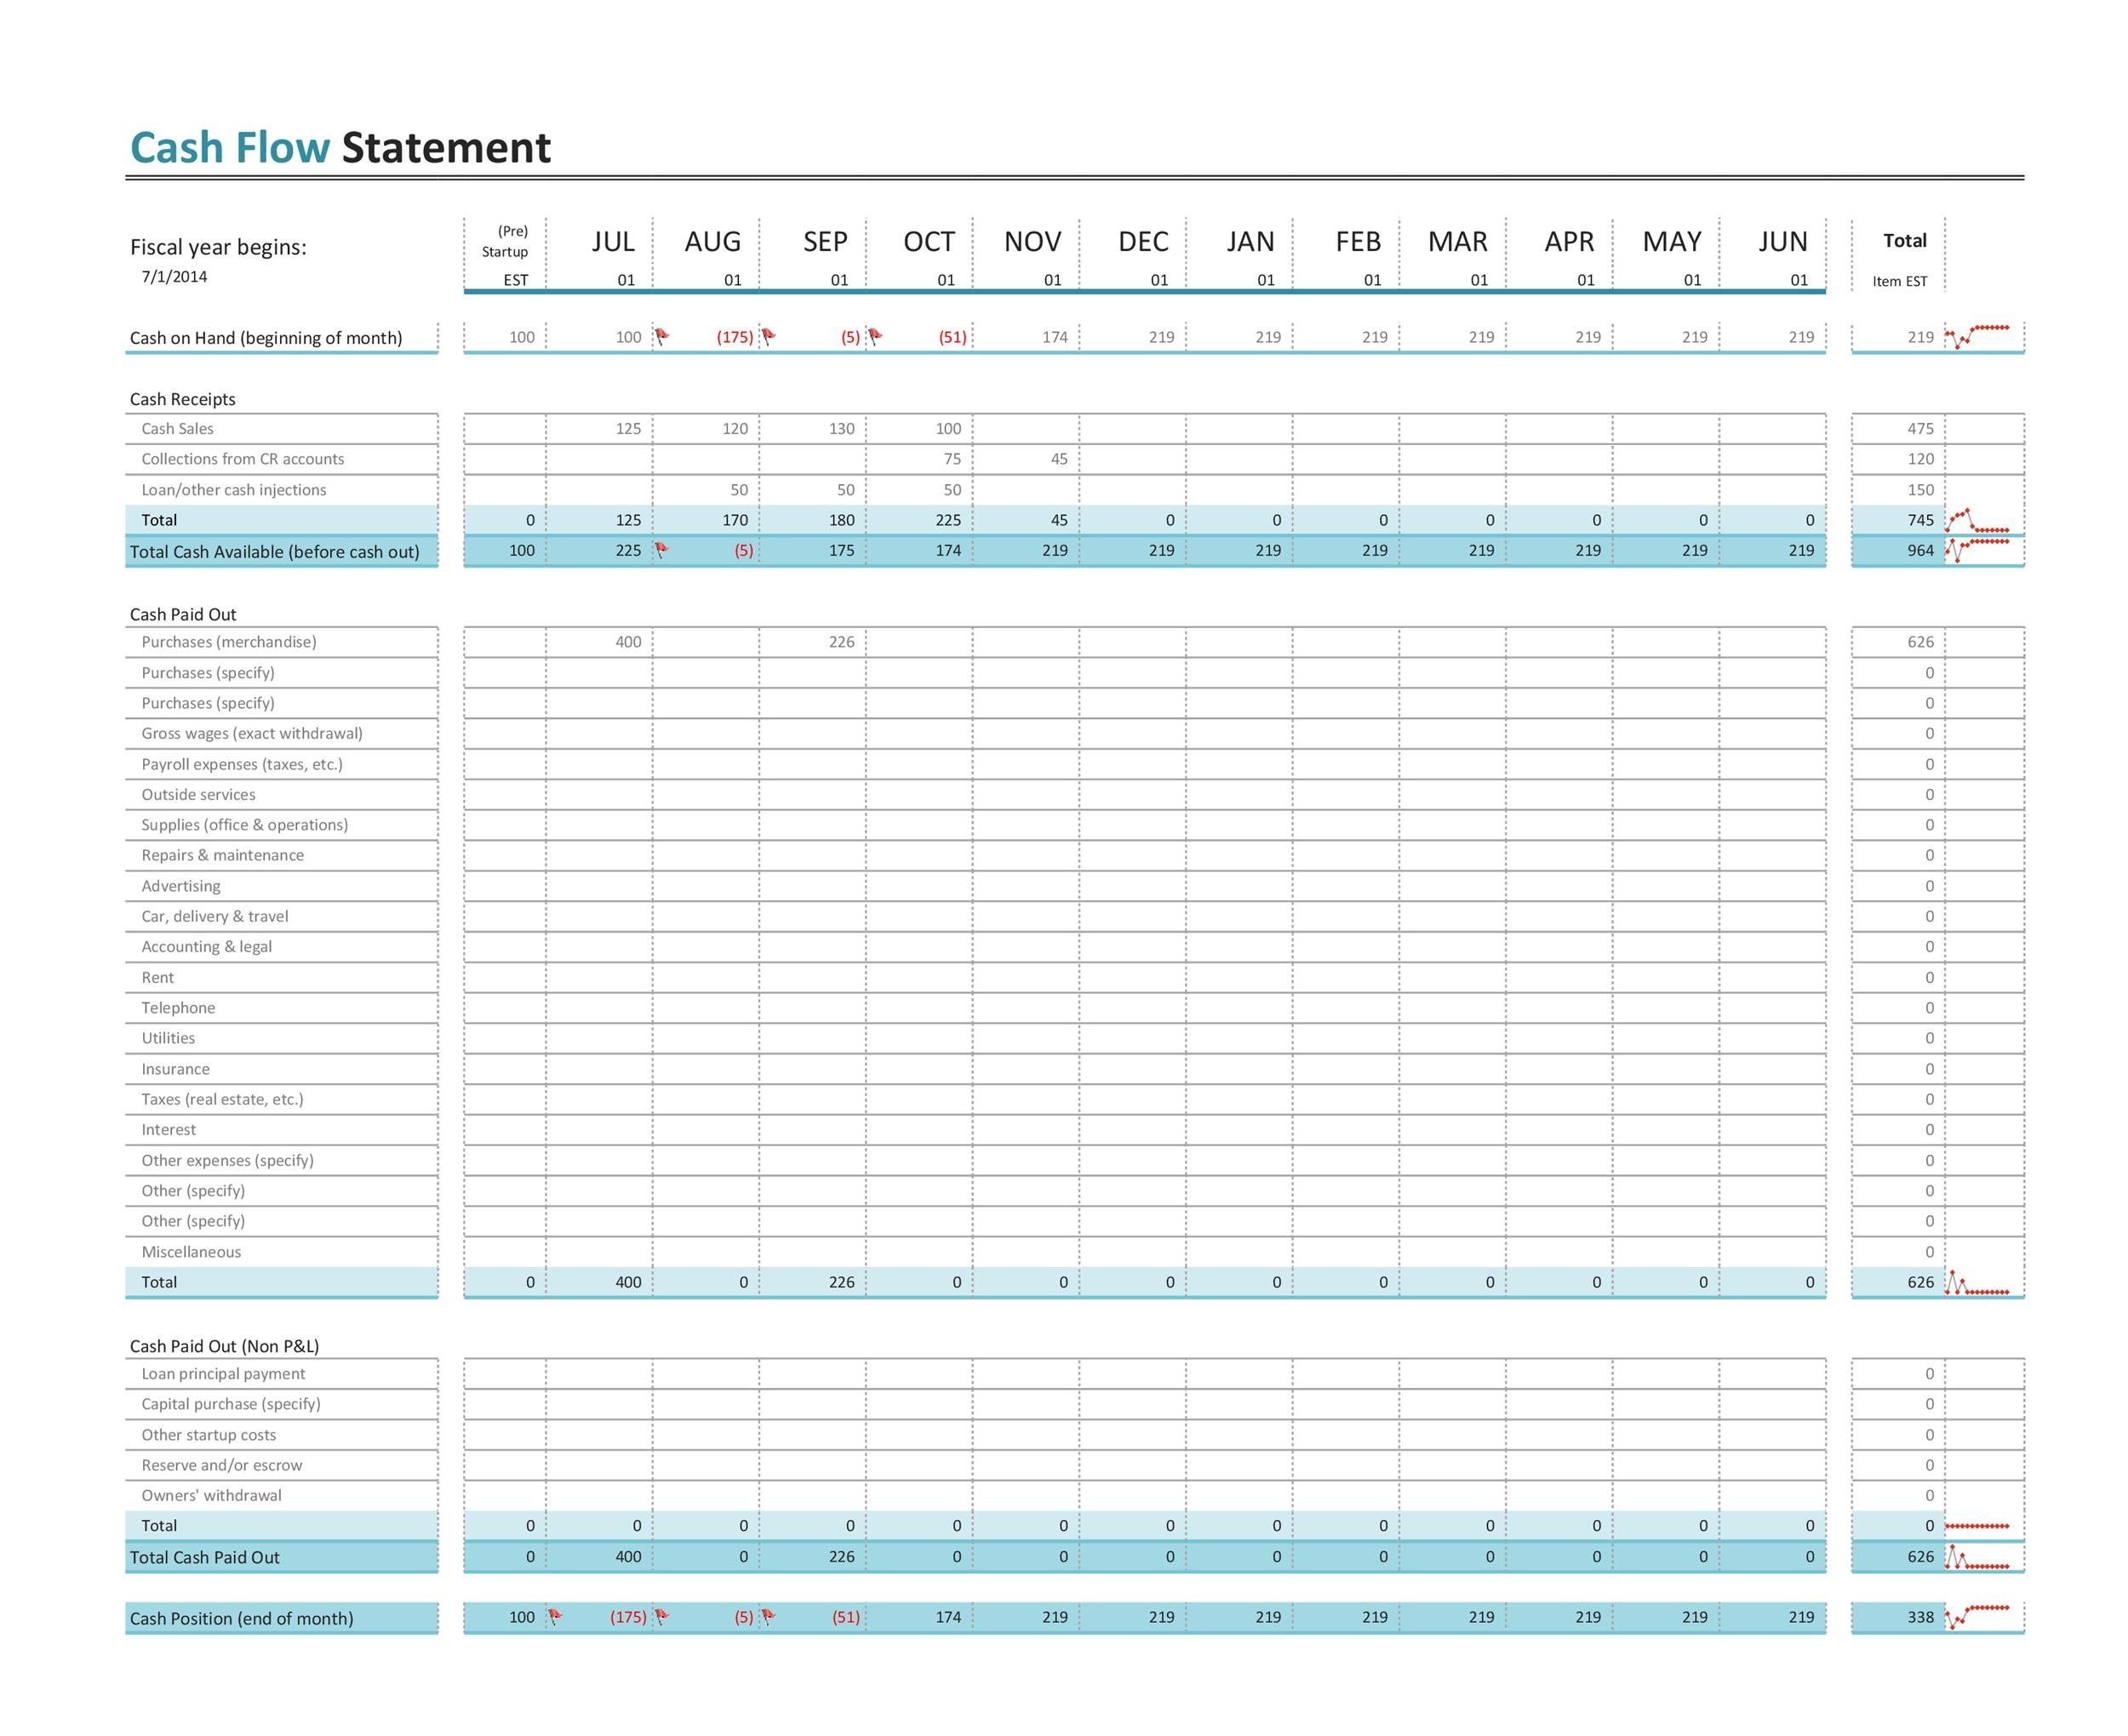 40+ FREE Cash Flow Statement Templates  Examples - Template Lab